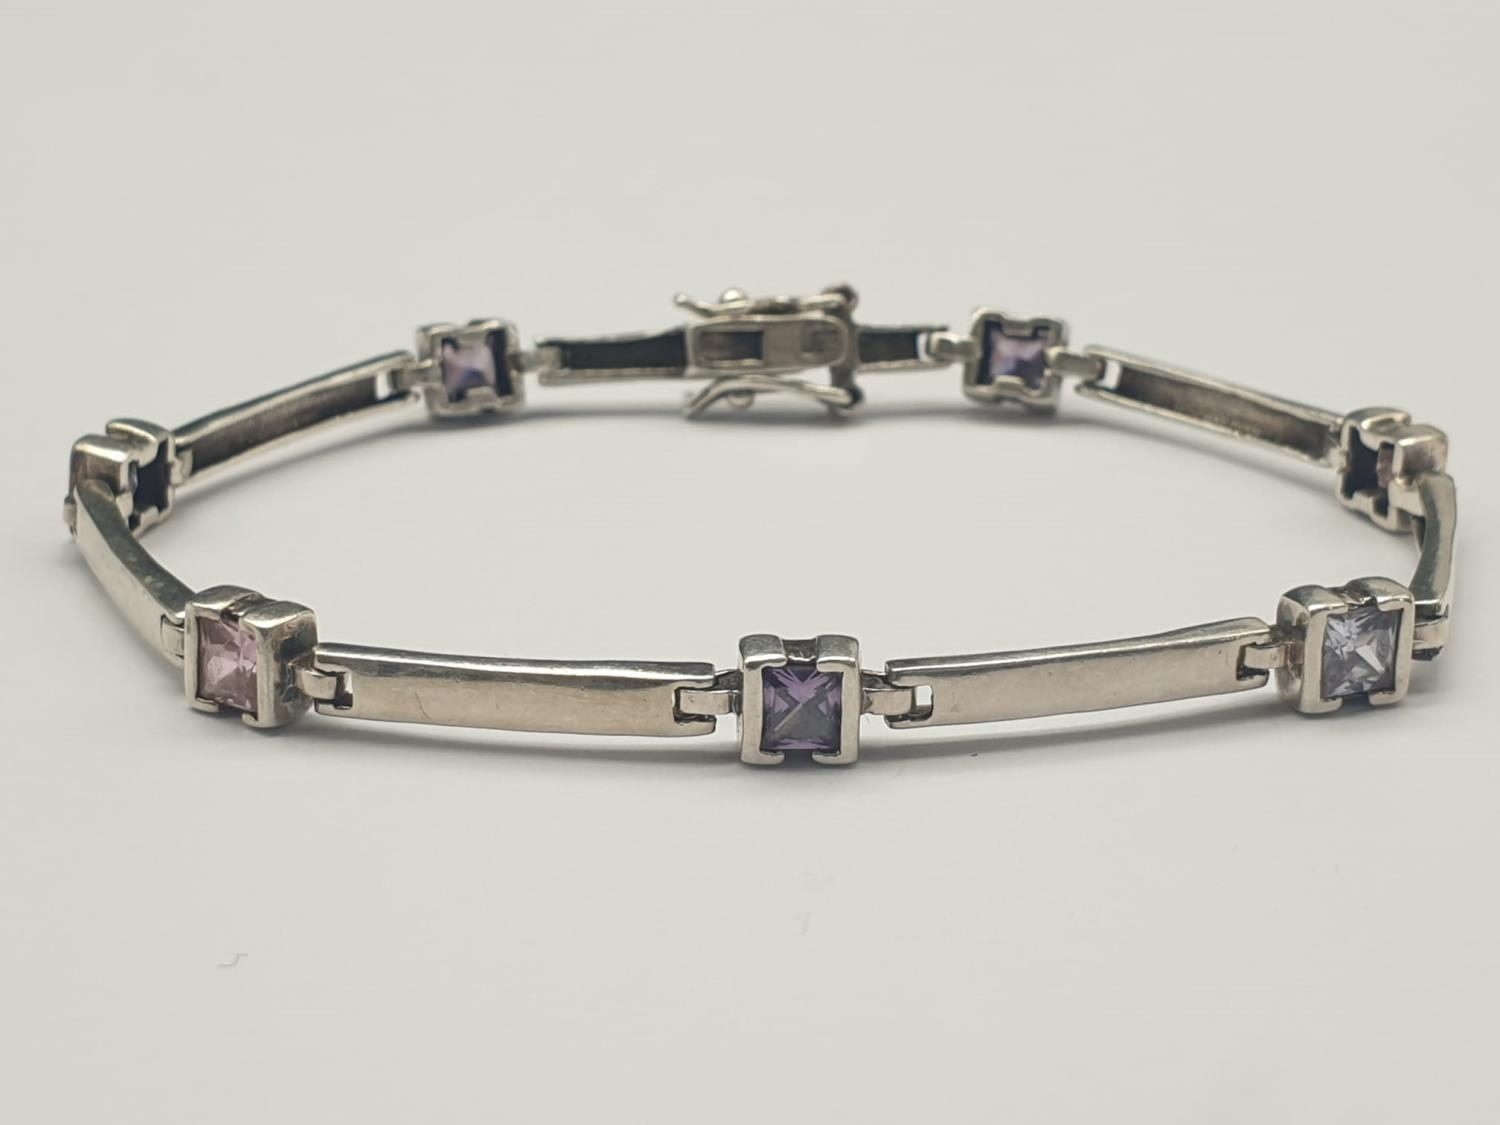 A SILVER ARTICULATED BRACELET WITH PINK, WHITE AND PURPLE STONES. 9.4gms 18cms